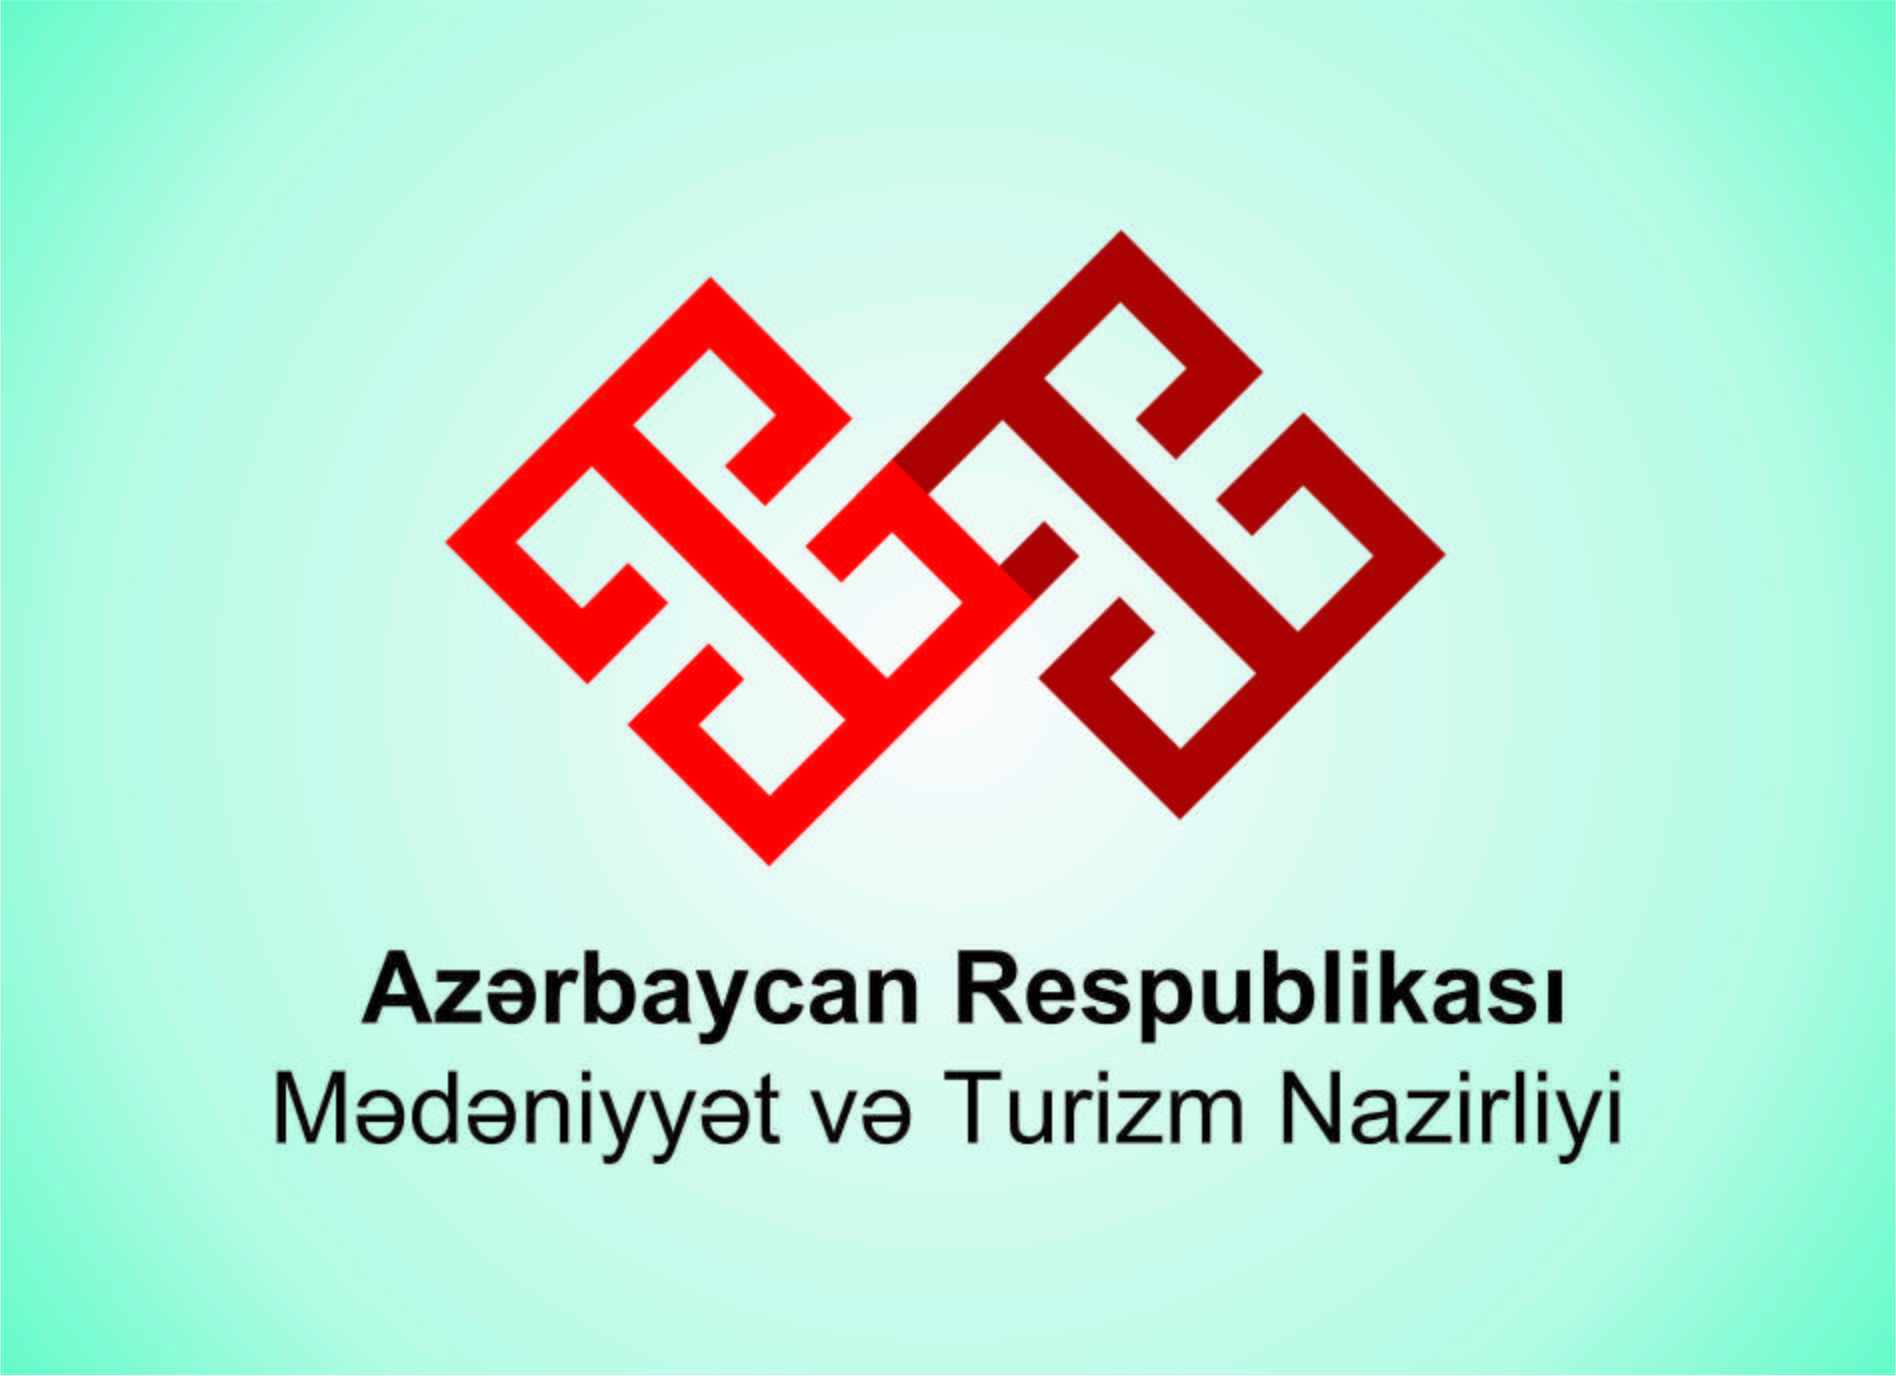 New Press Secretary appointed to Ministry of Culture of Azerbaijan